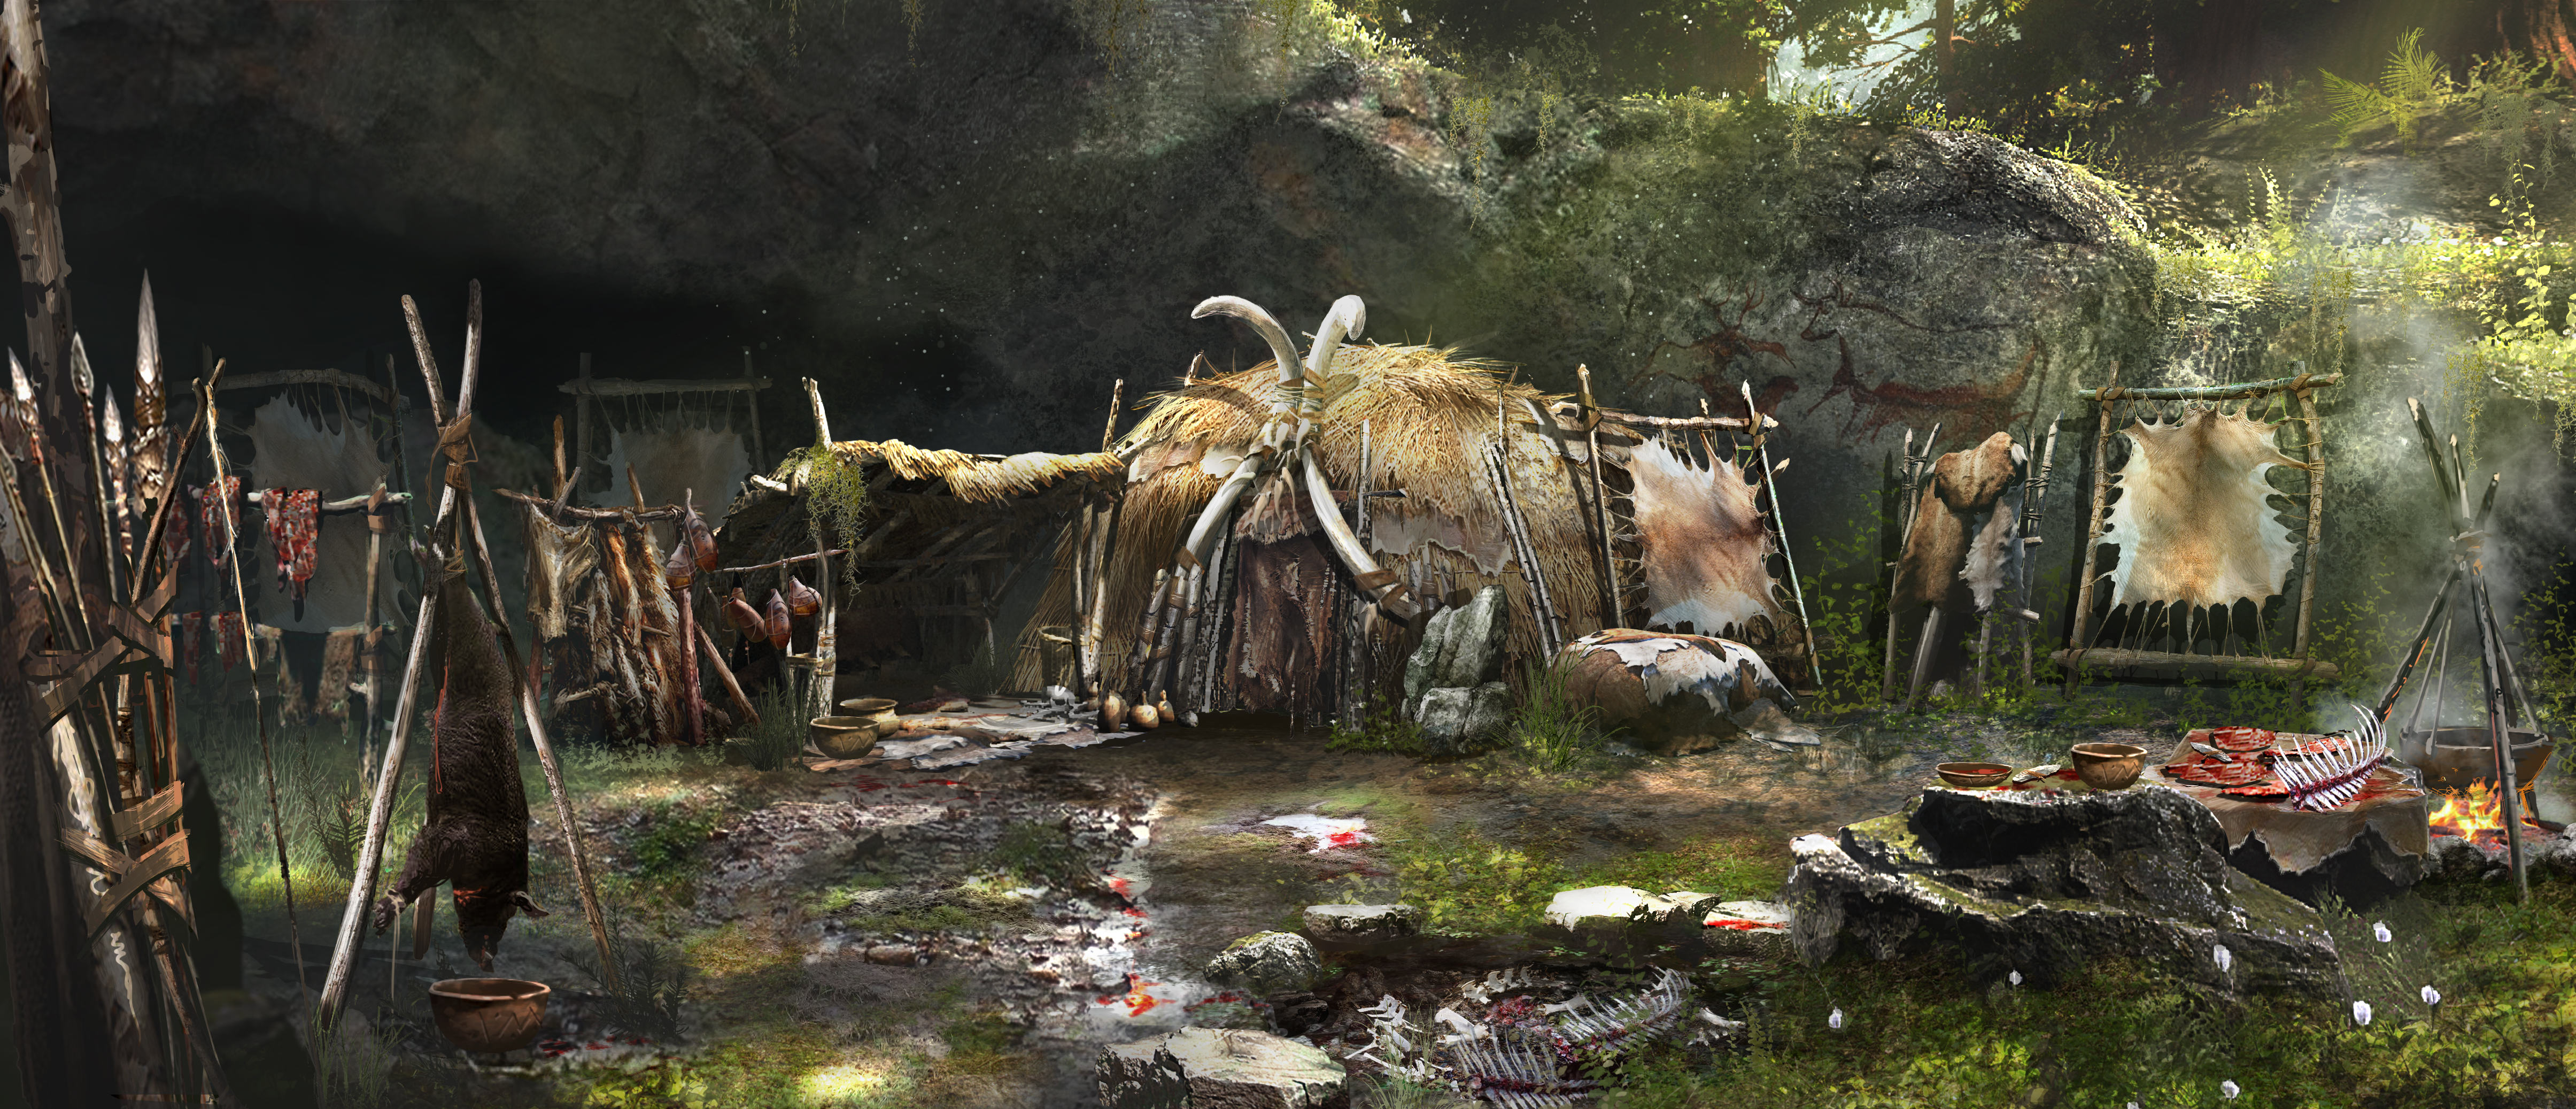 FCP 01 CONCEPT WENJA VILLAGE HUNTER HUT PREVIEW PR 160126 6pm CET 1453716175 An Exclusive Look At Far Cry Primal Ahead Of Release Day